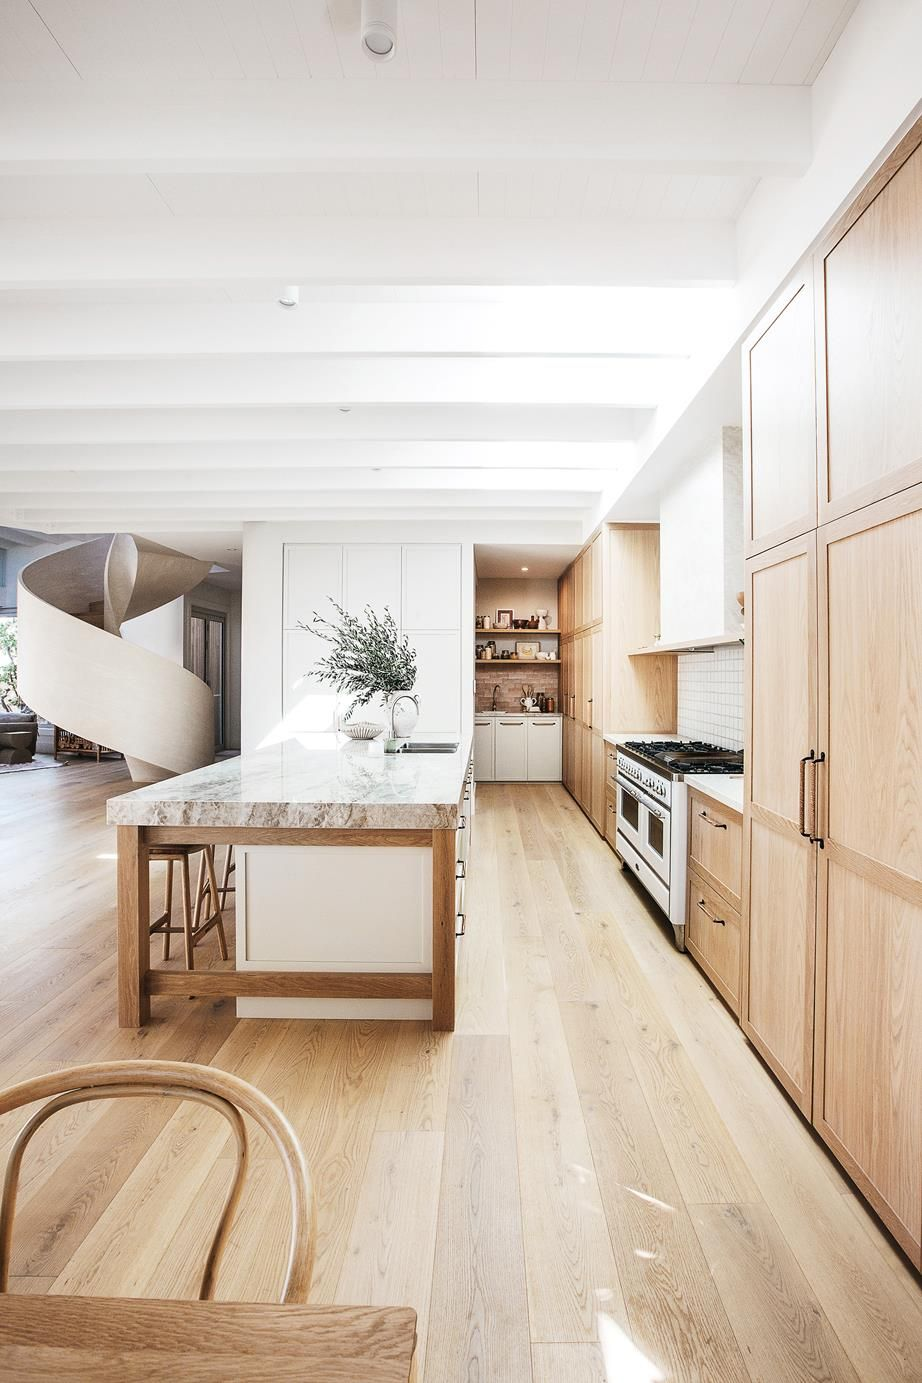 Kyal and Kara's new home: an Australian spin on Mediterranean style